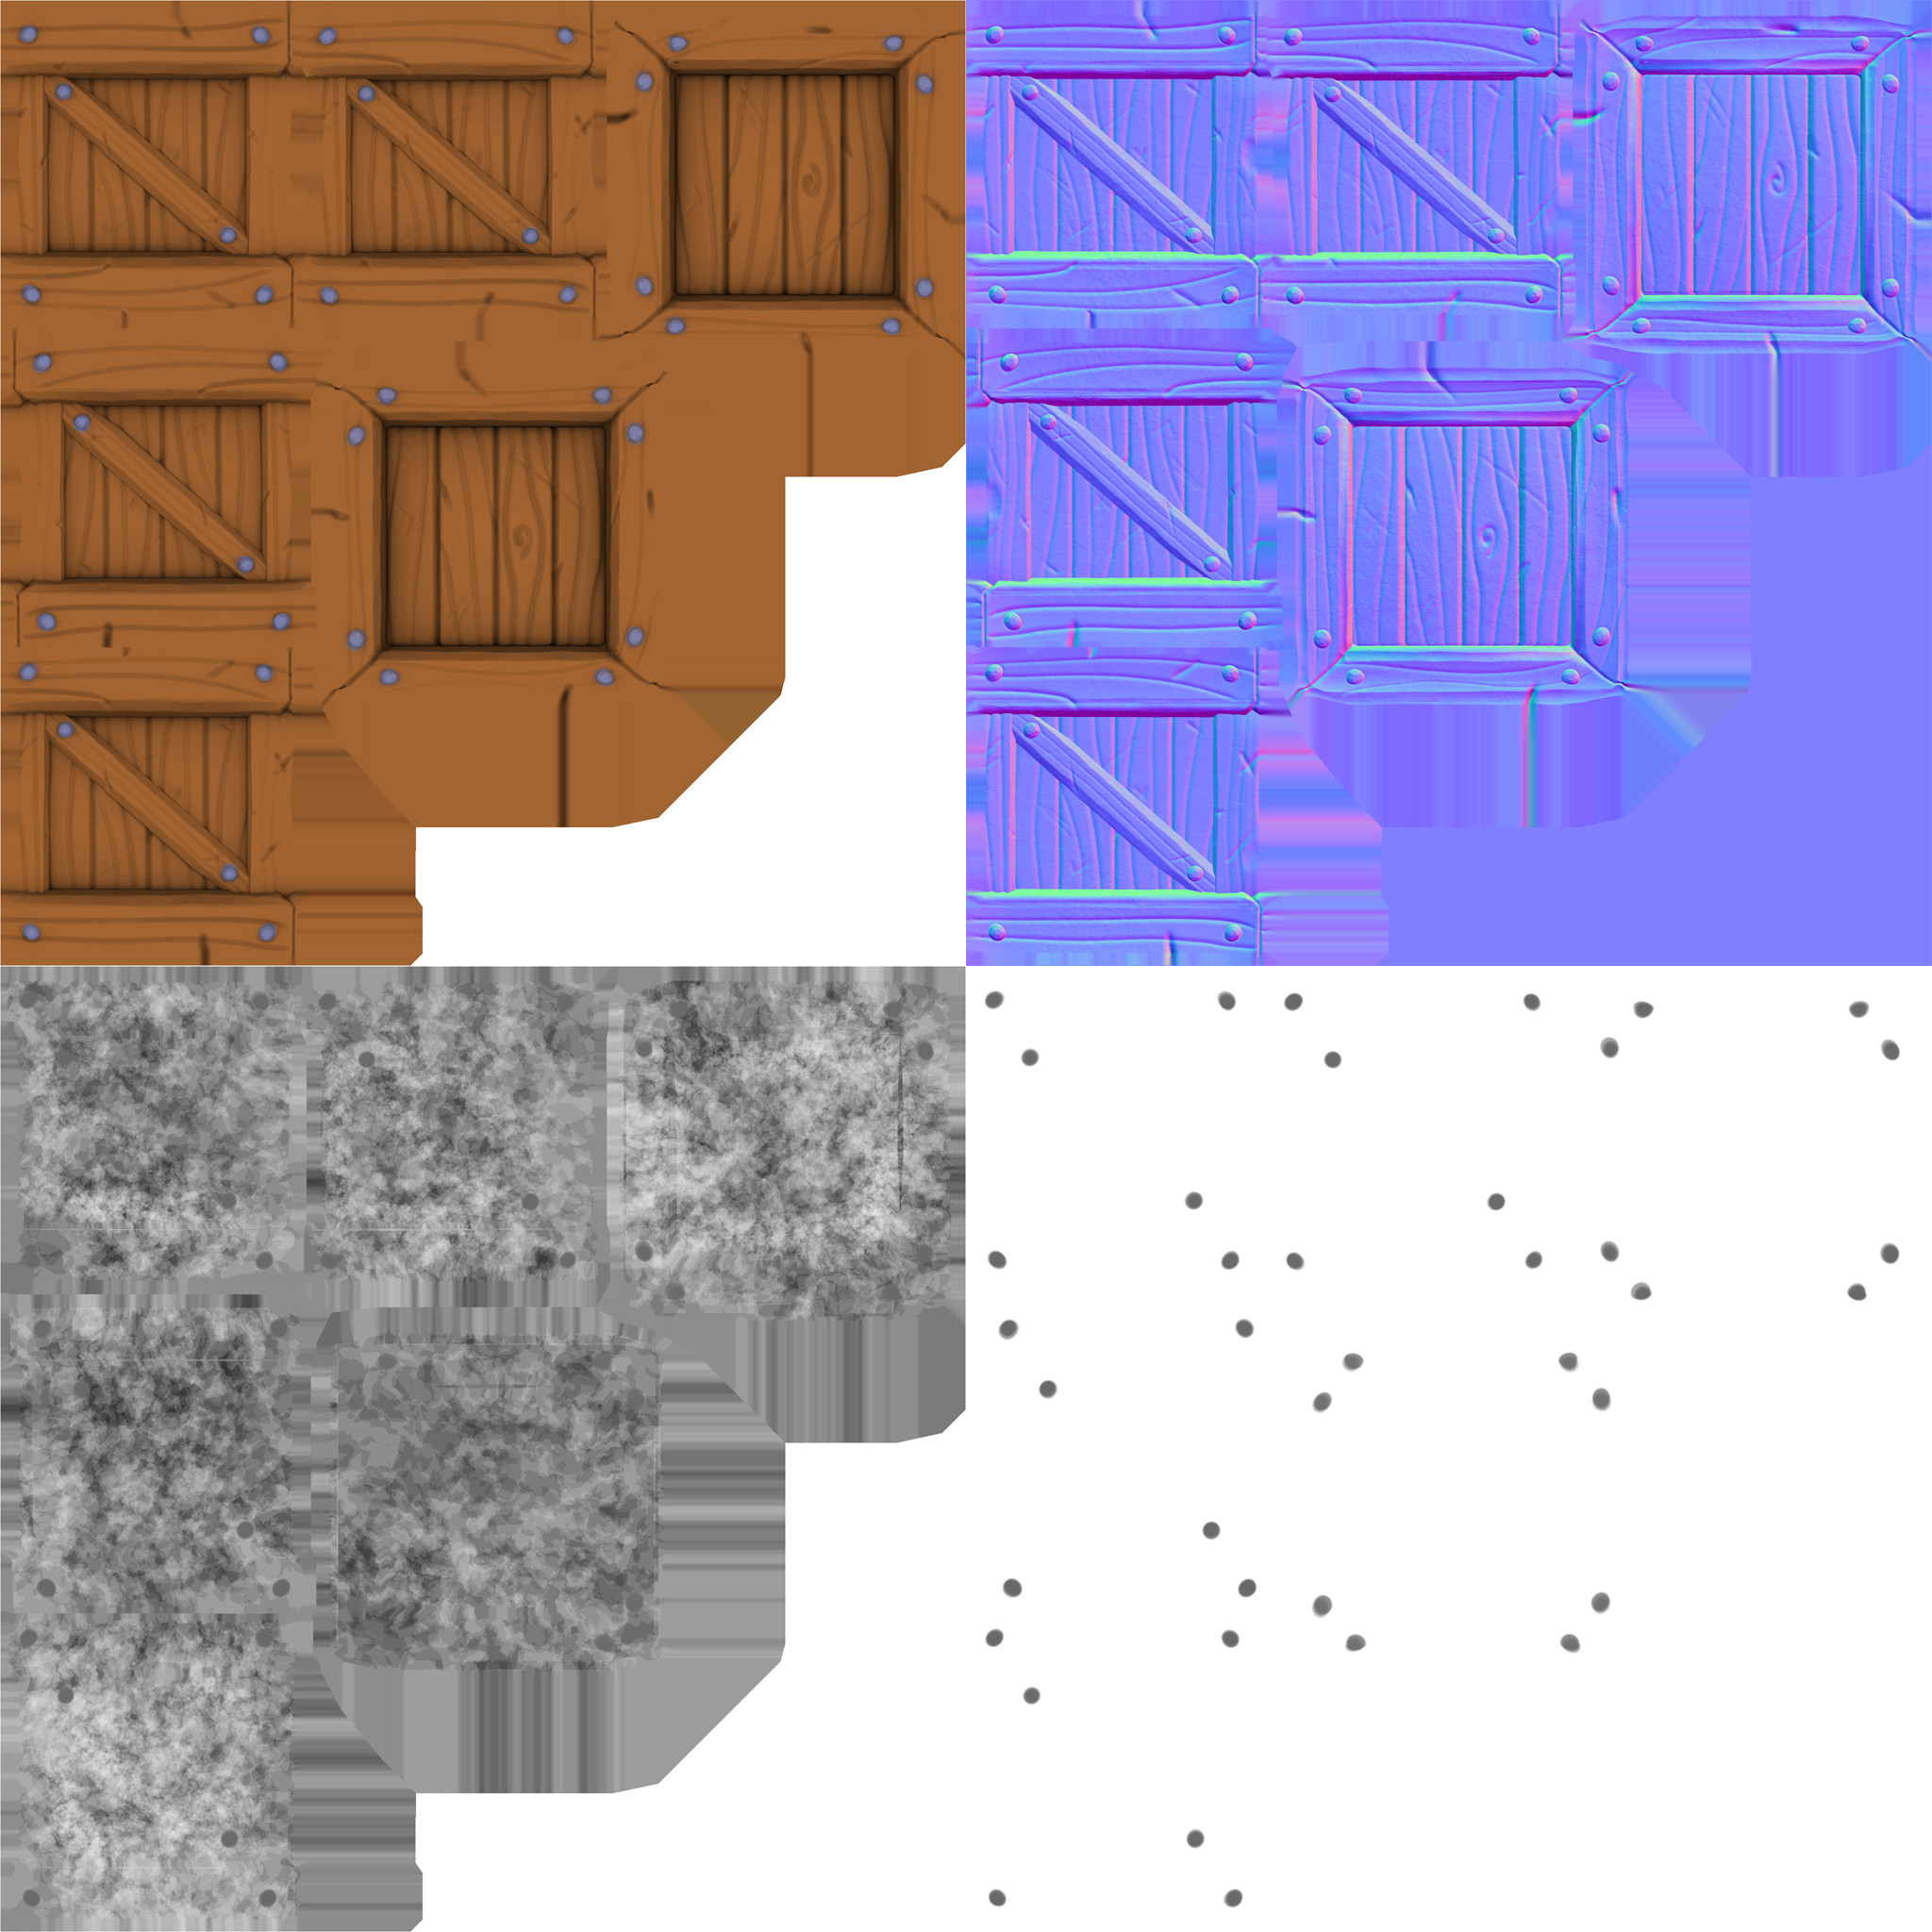 Crate albedo, normal, roughness, and metal maps (left to right)